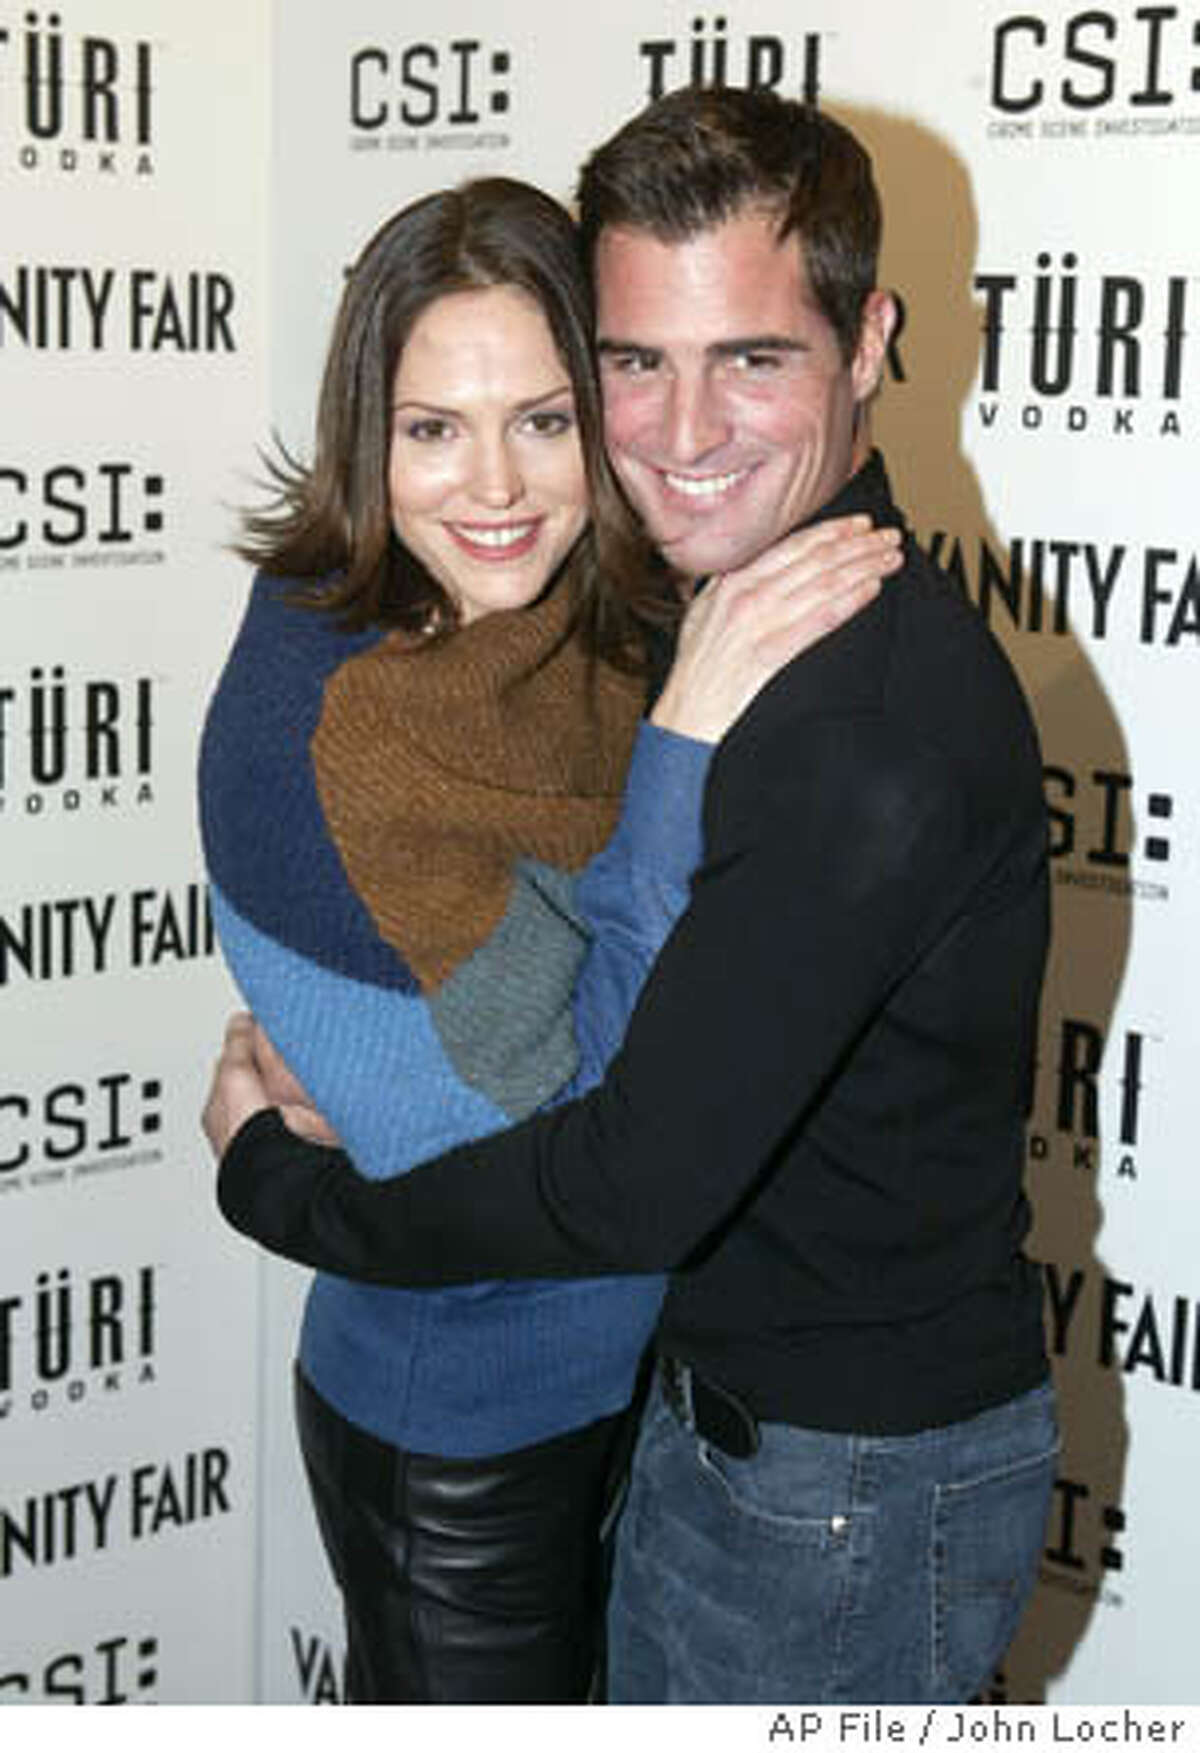 ** FILE **CSI: Crime Scene Investigation cast members Jorja Fox, left, and George Eads embrace on their way into a Vanity Fair party in Las Vegas, in this Dec. 14, 2003, file photo. Fox and Eads, who play investigators Sara Sidle and Nick Stokes, were fired after asking for more money to stay on the show, according to the reports. (AP Photo/John Locher/FILE)